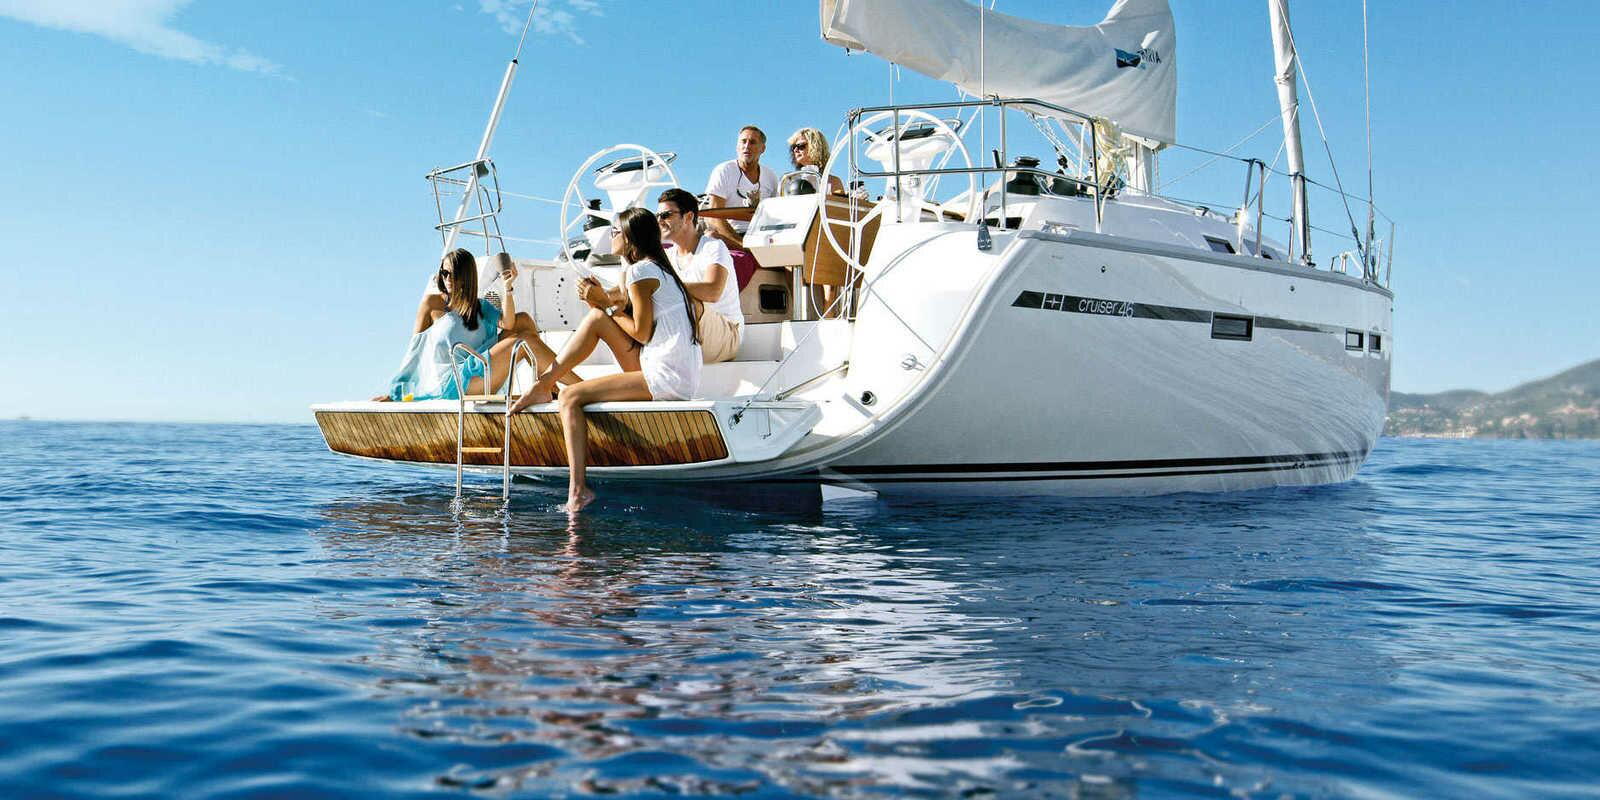 Sailing holiday in the heart of the Mediterranean, nature and art come together in blue and in the most genuine flavors